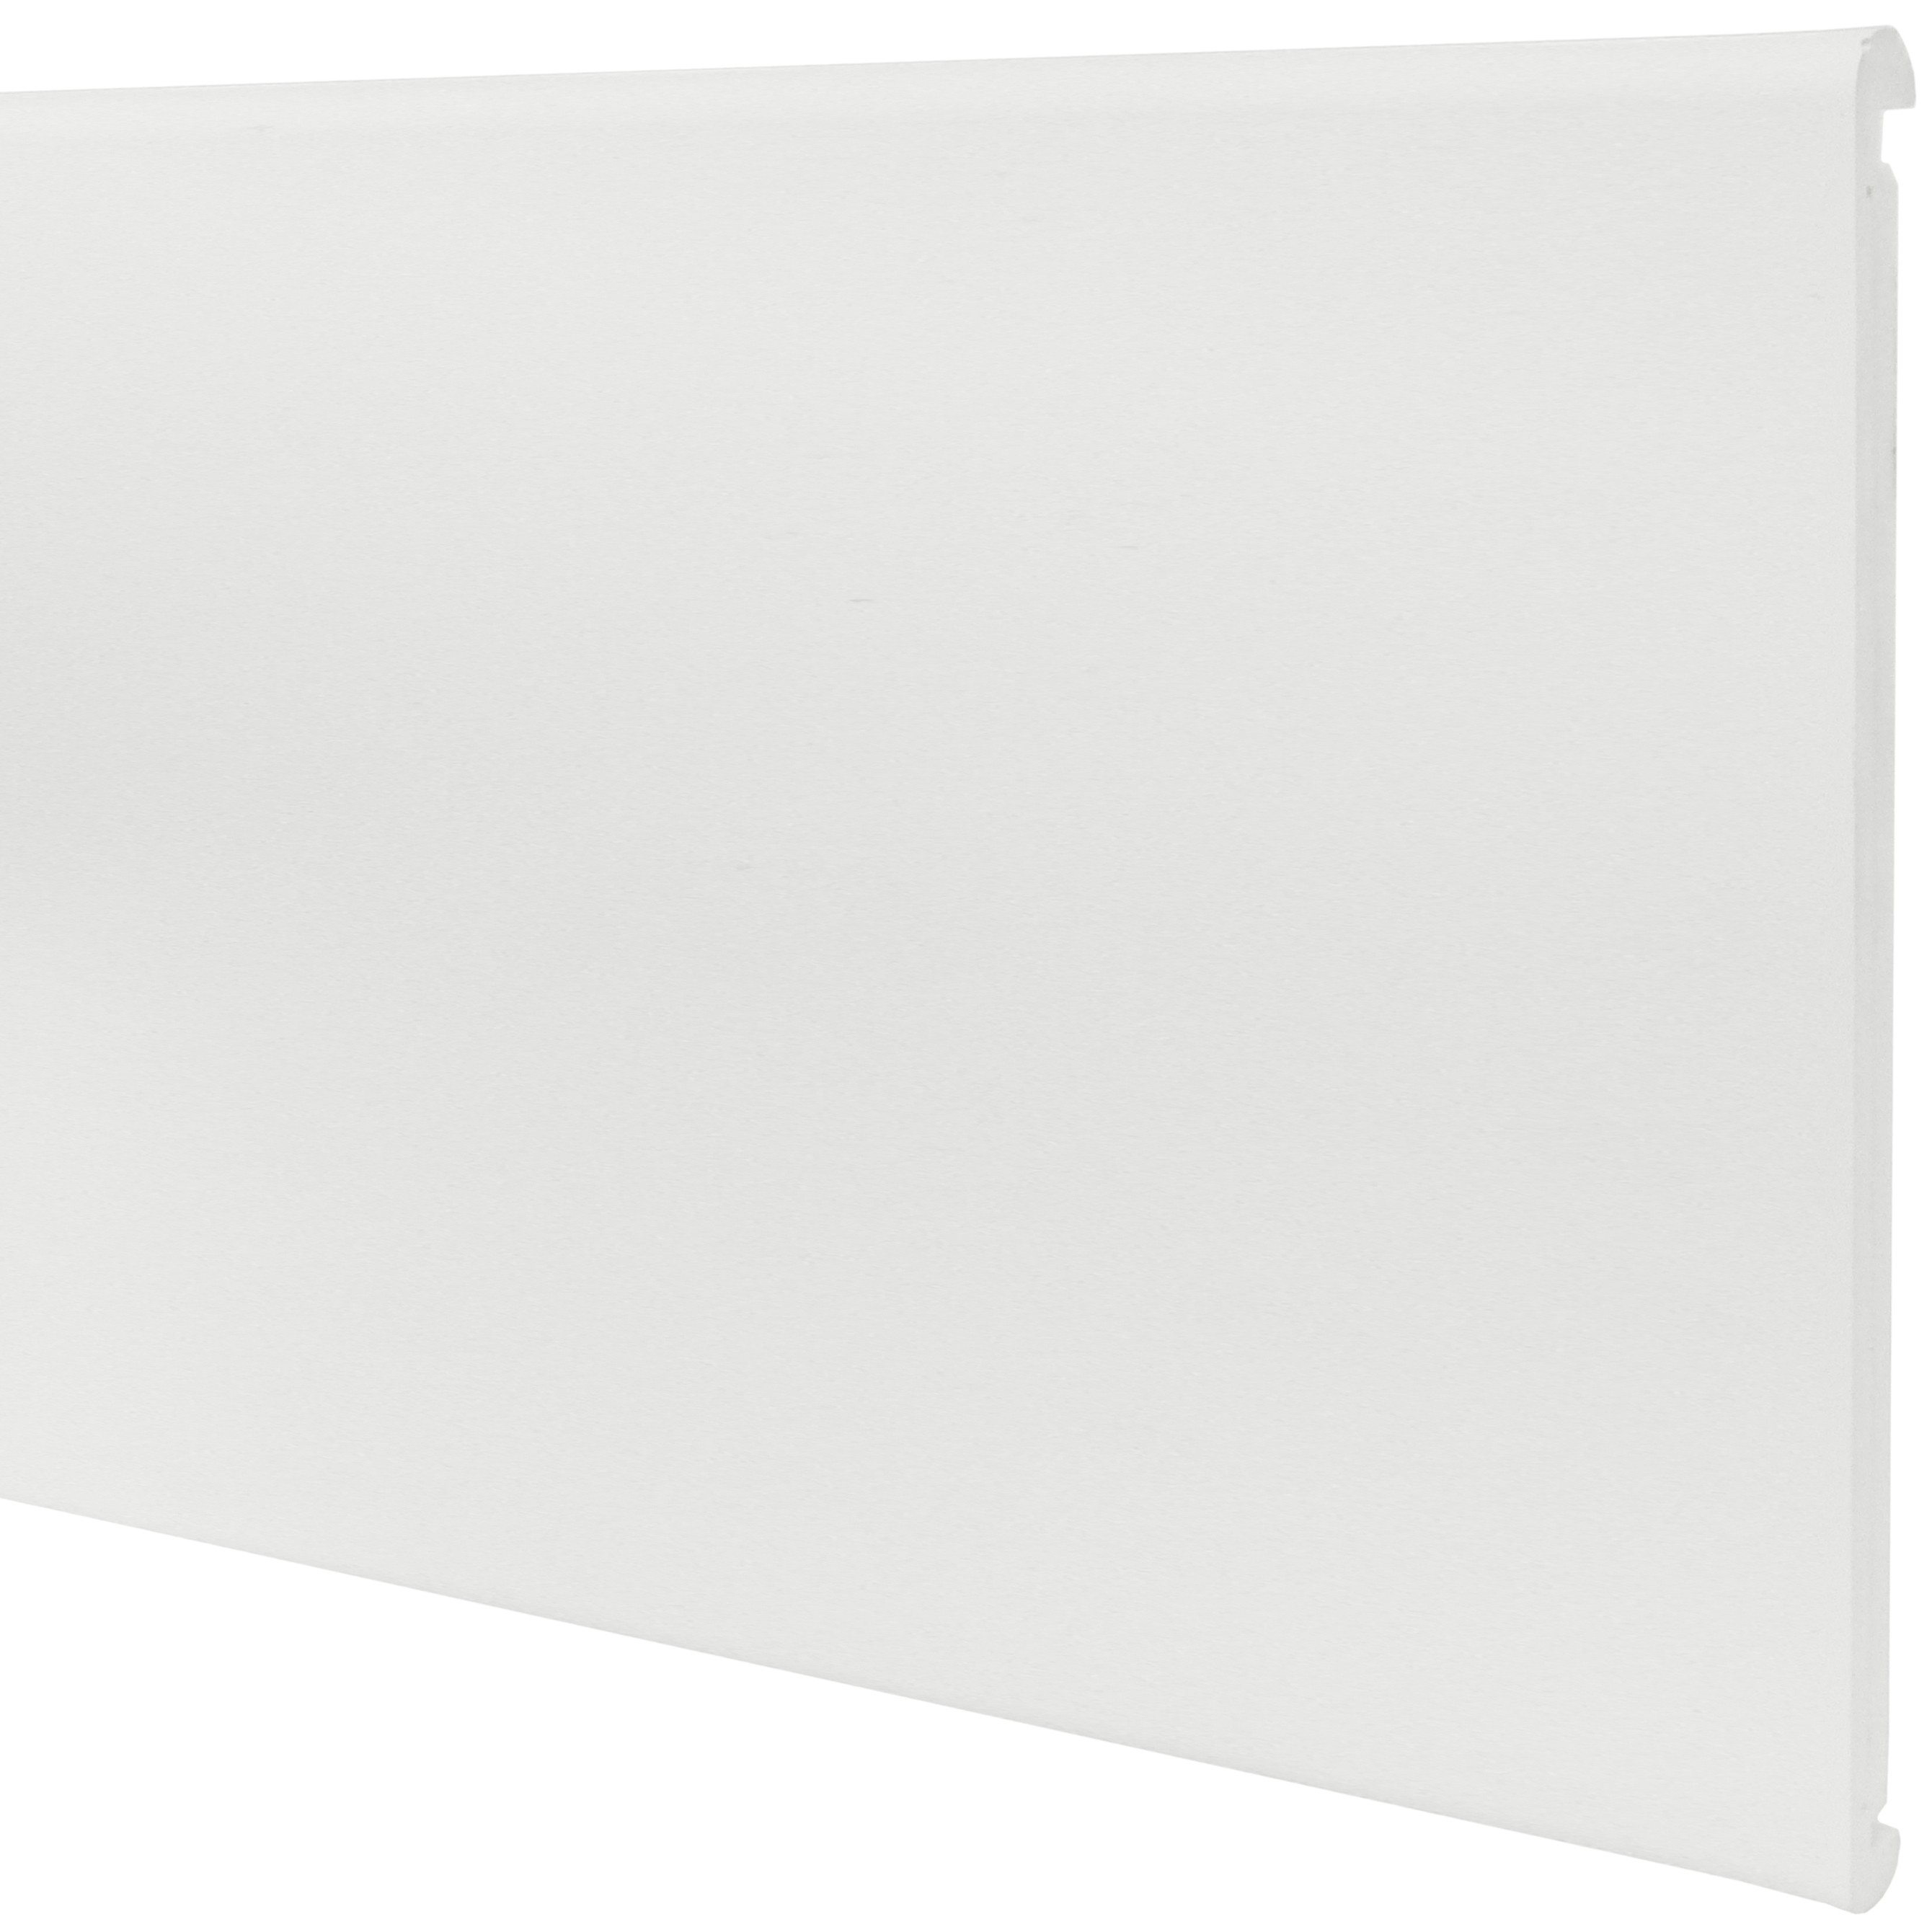 Freefoam Round Nose 18mm Doubled Sided Fascia Board - White, 405mm, 5 metre